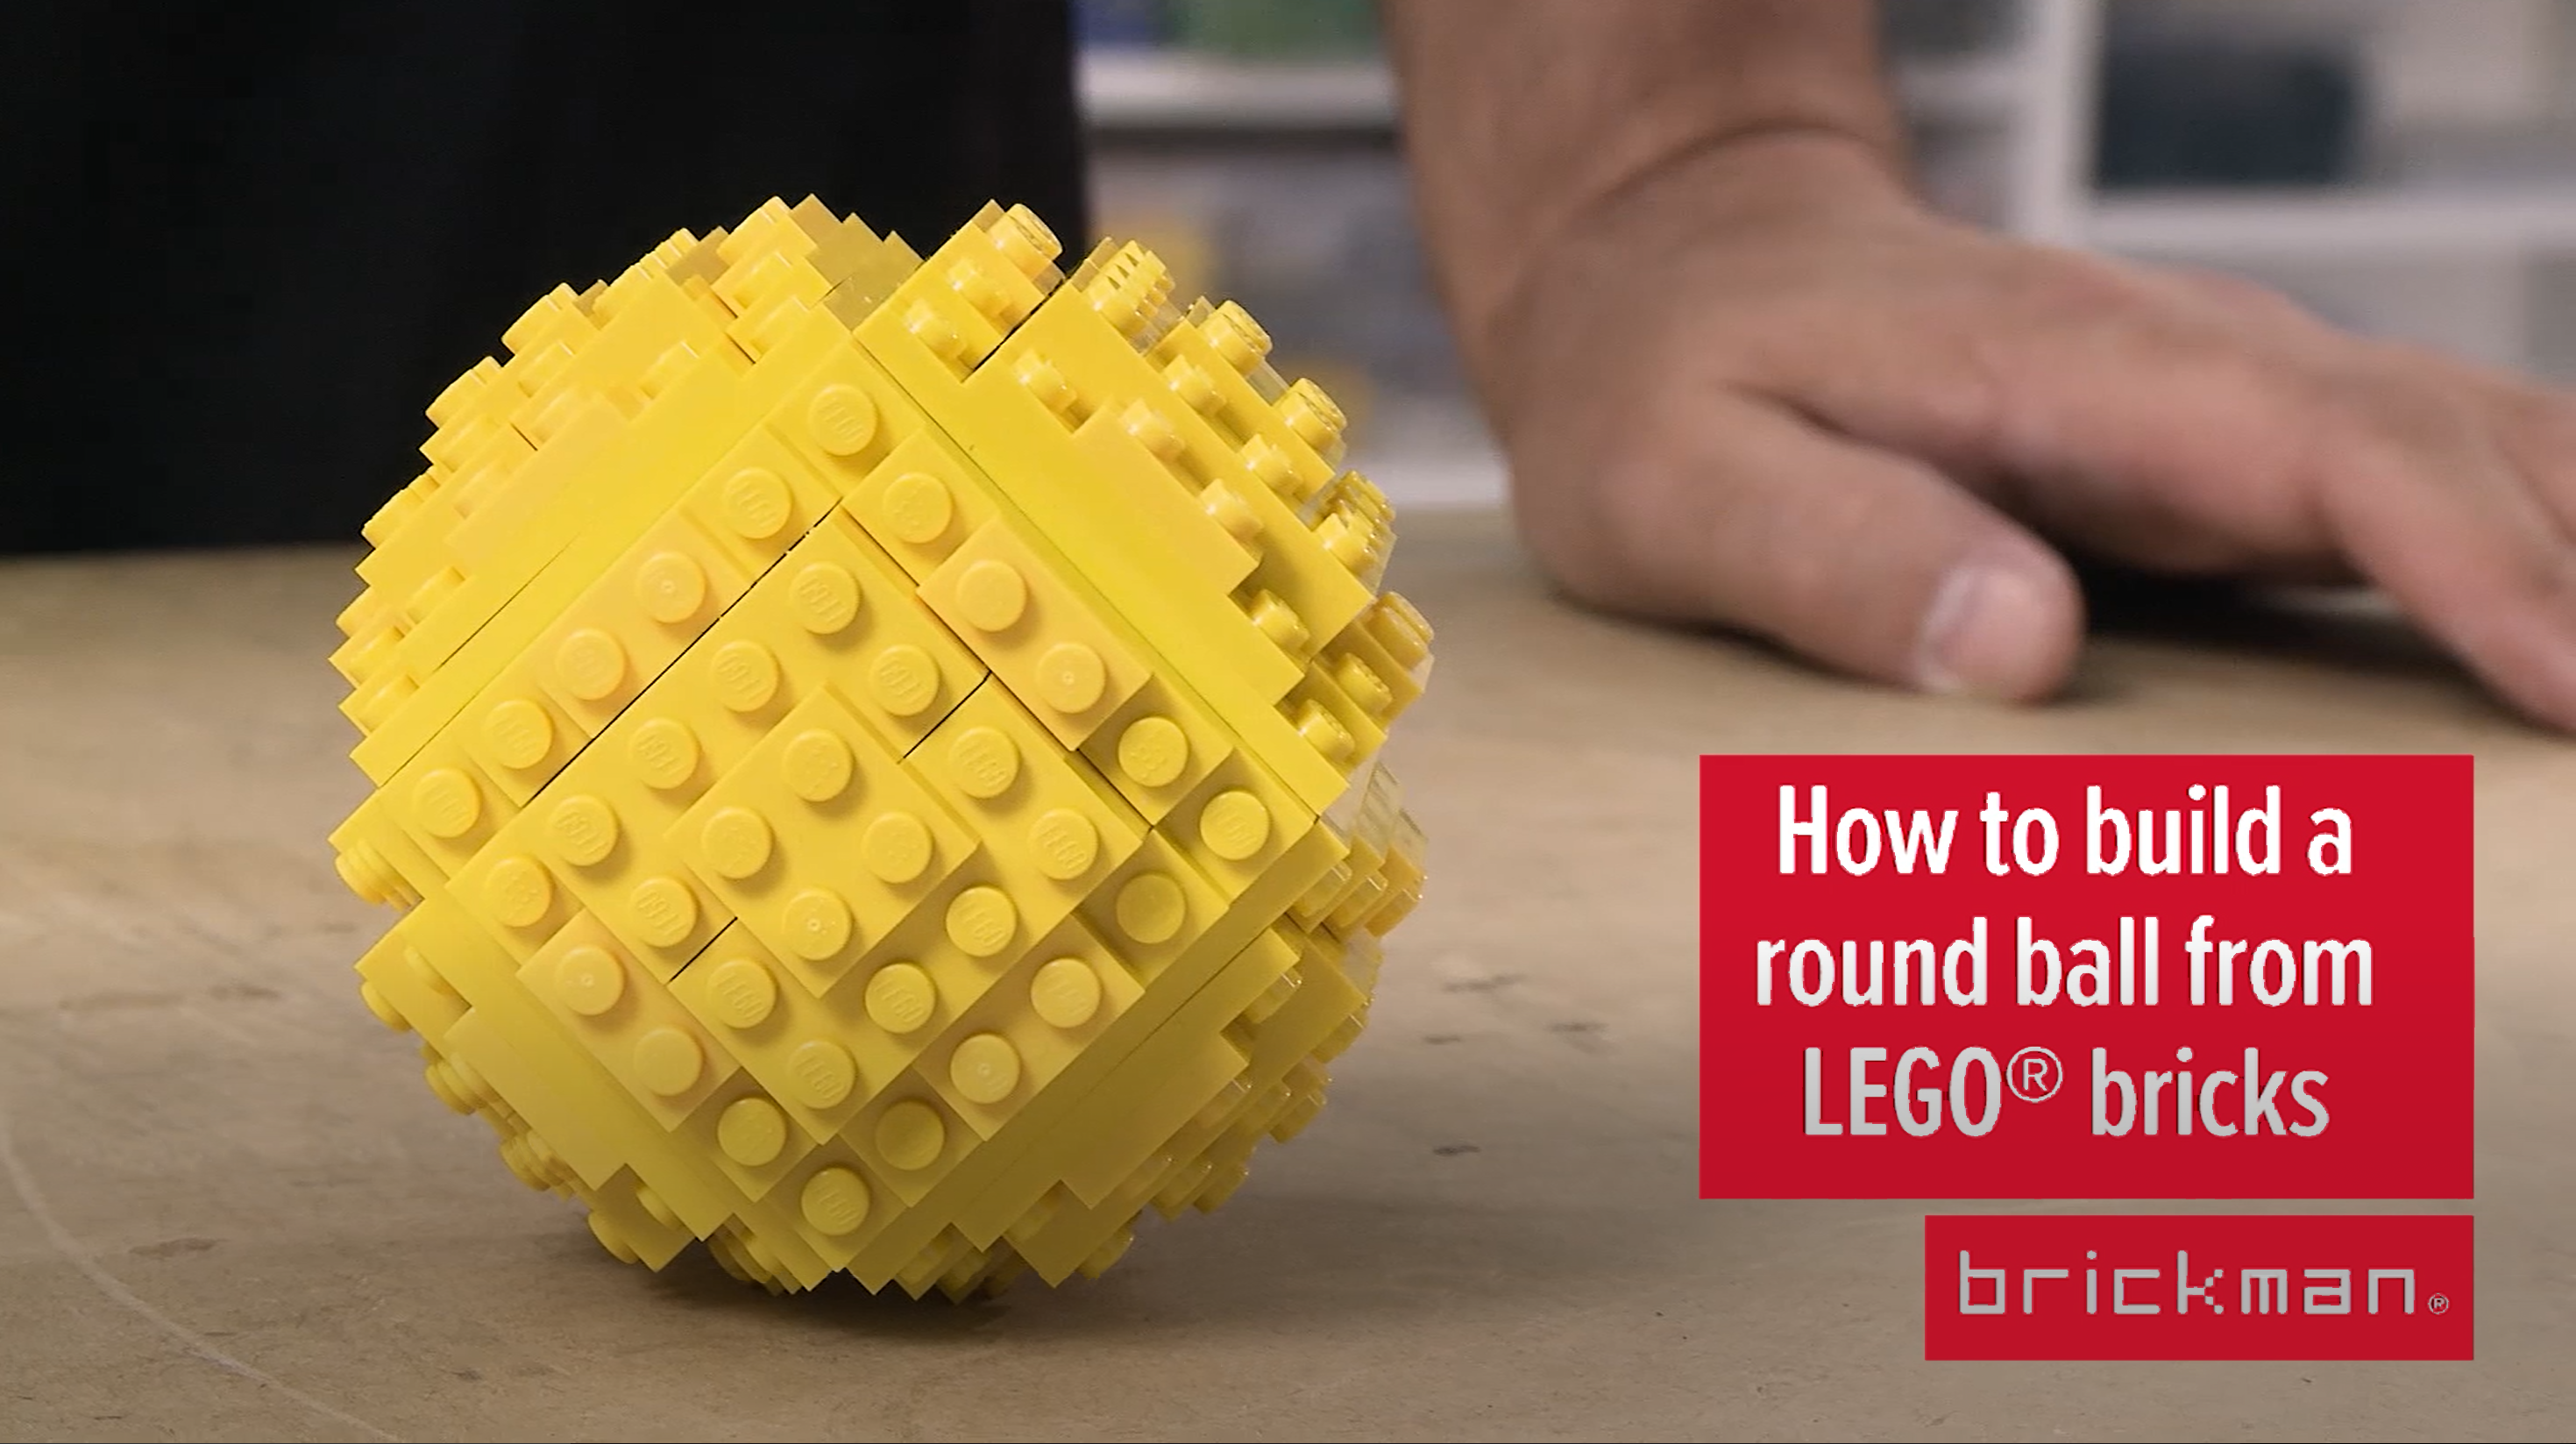 Making a ball from LEGO® bricks